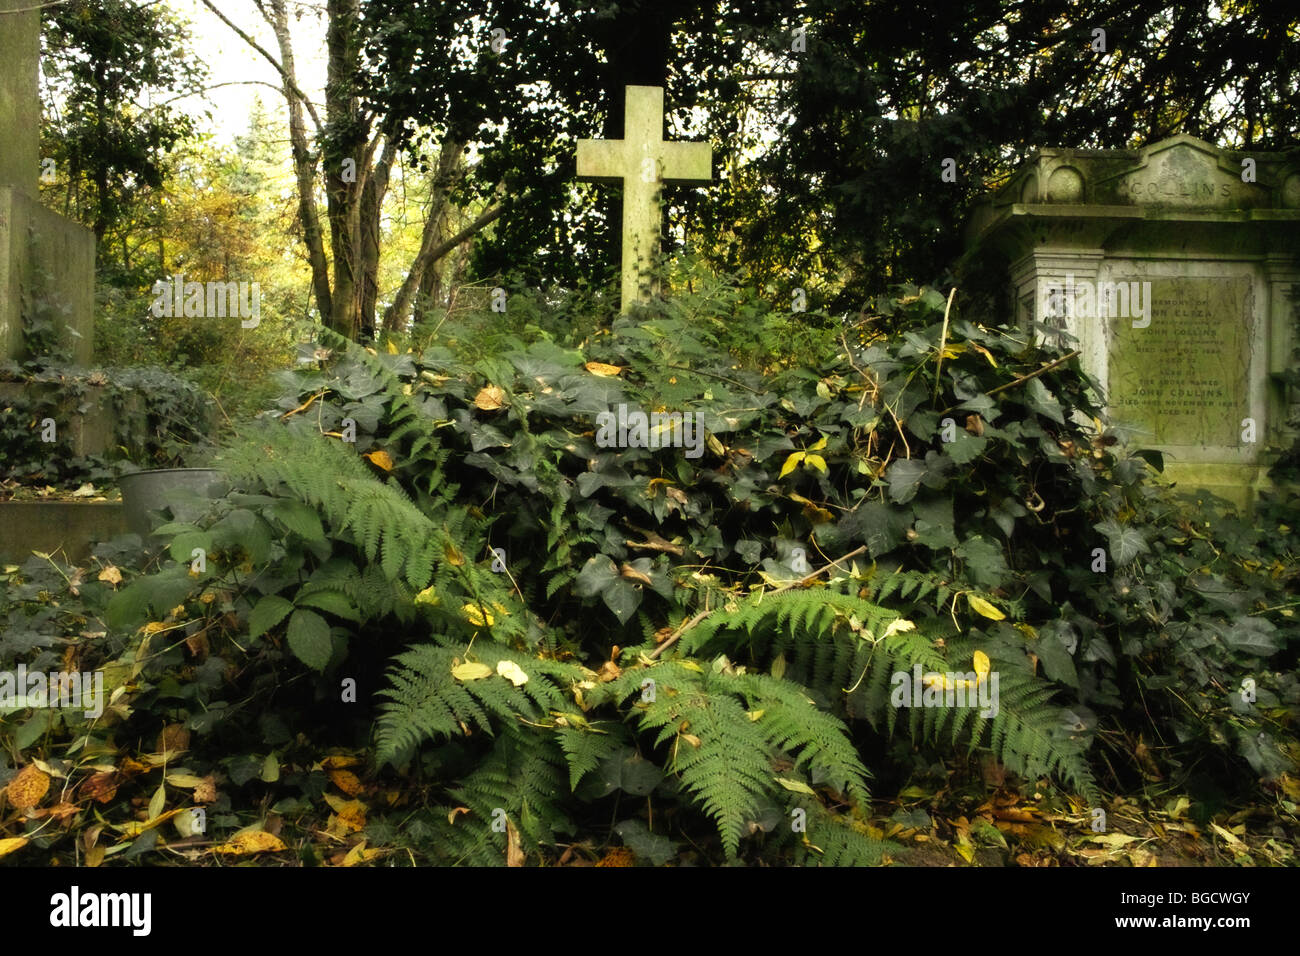 gravestones and undergrowth in Highgate Cemetery in London England UK - Stock Image